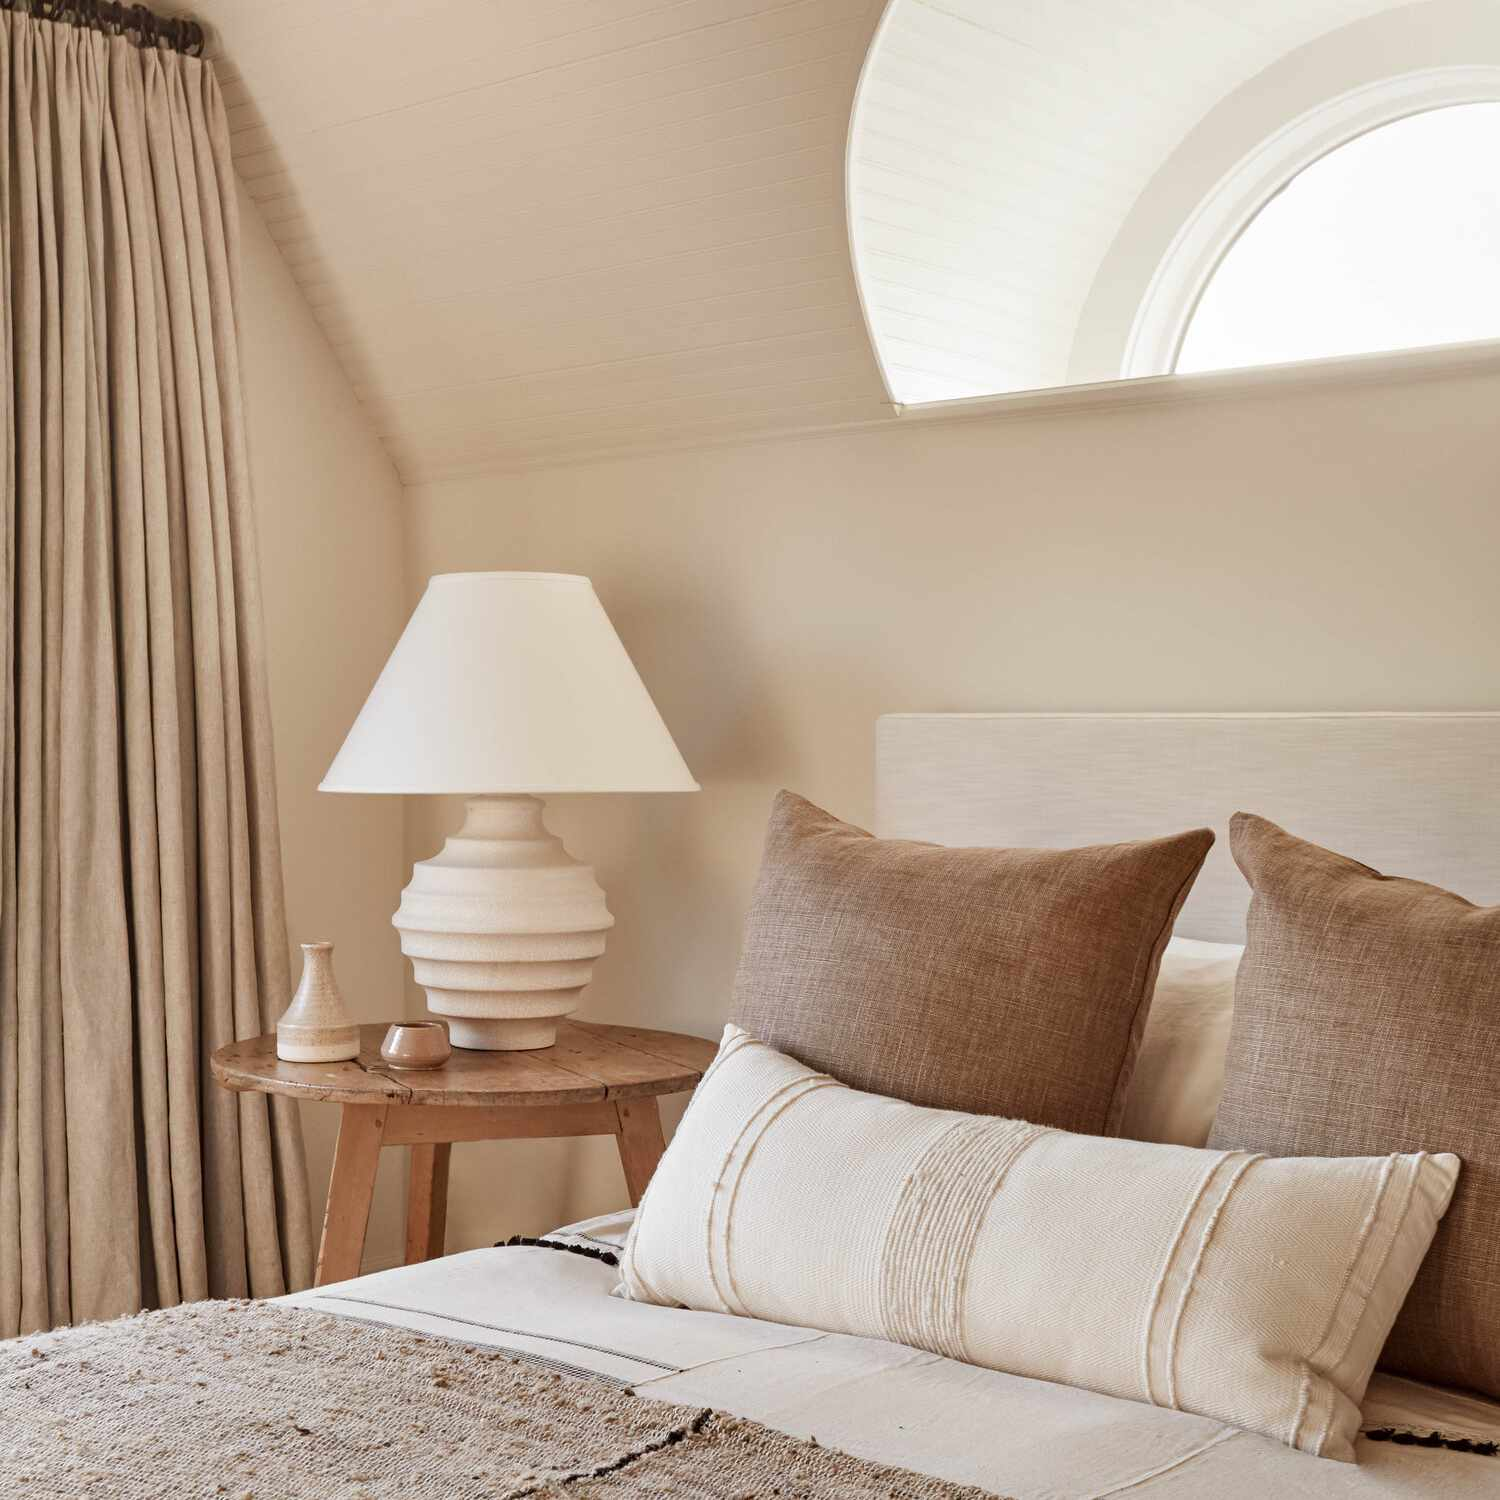 A bedroom filled with beige and almond decor